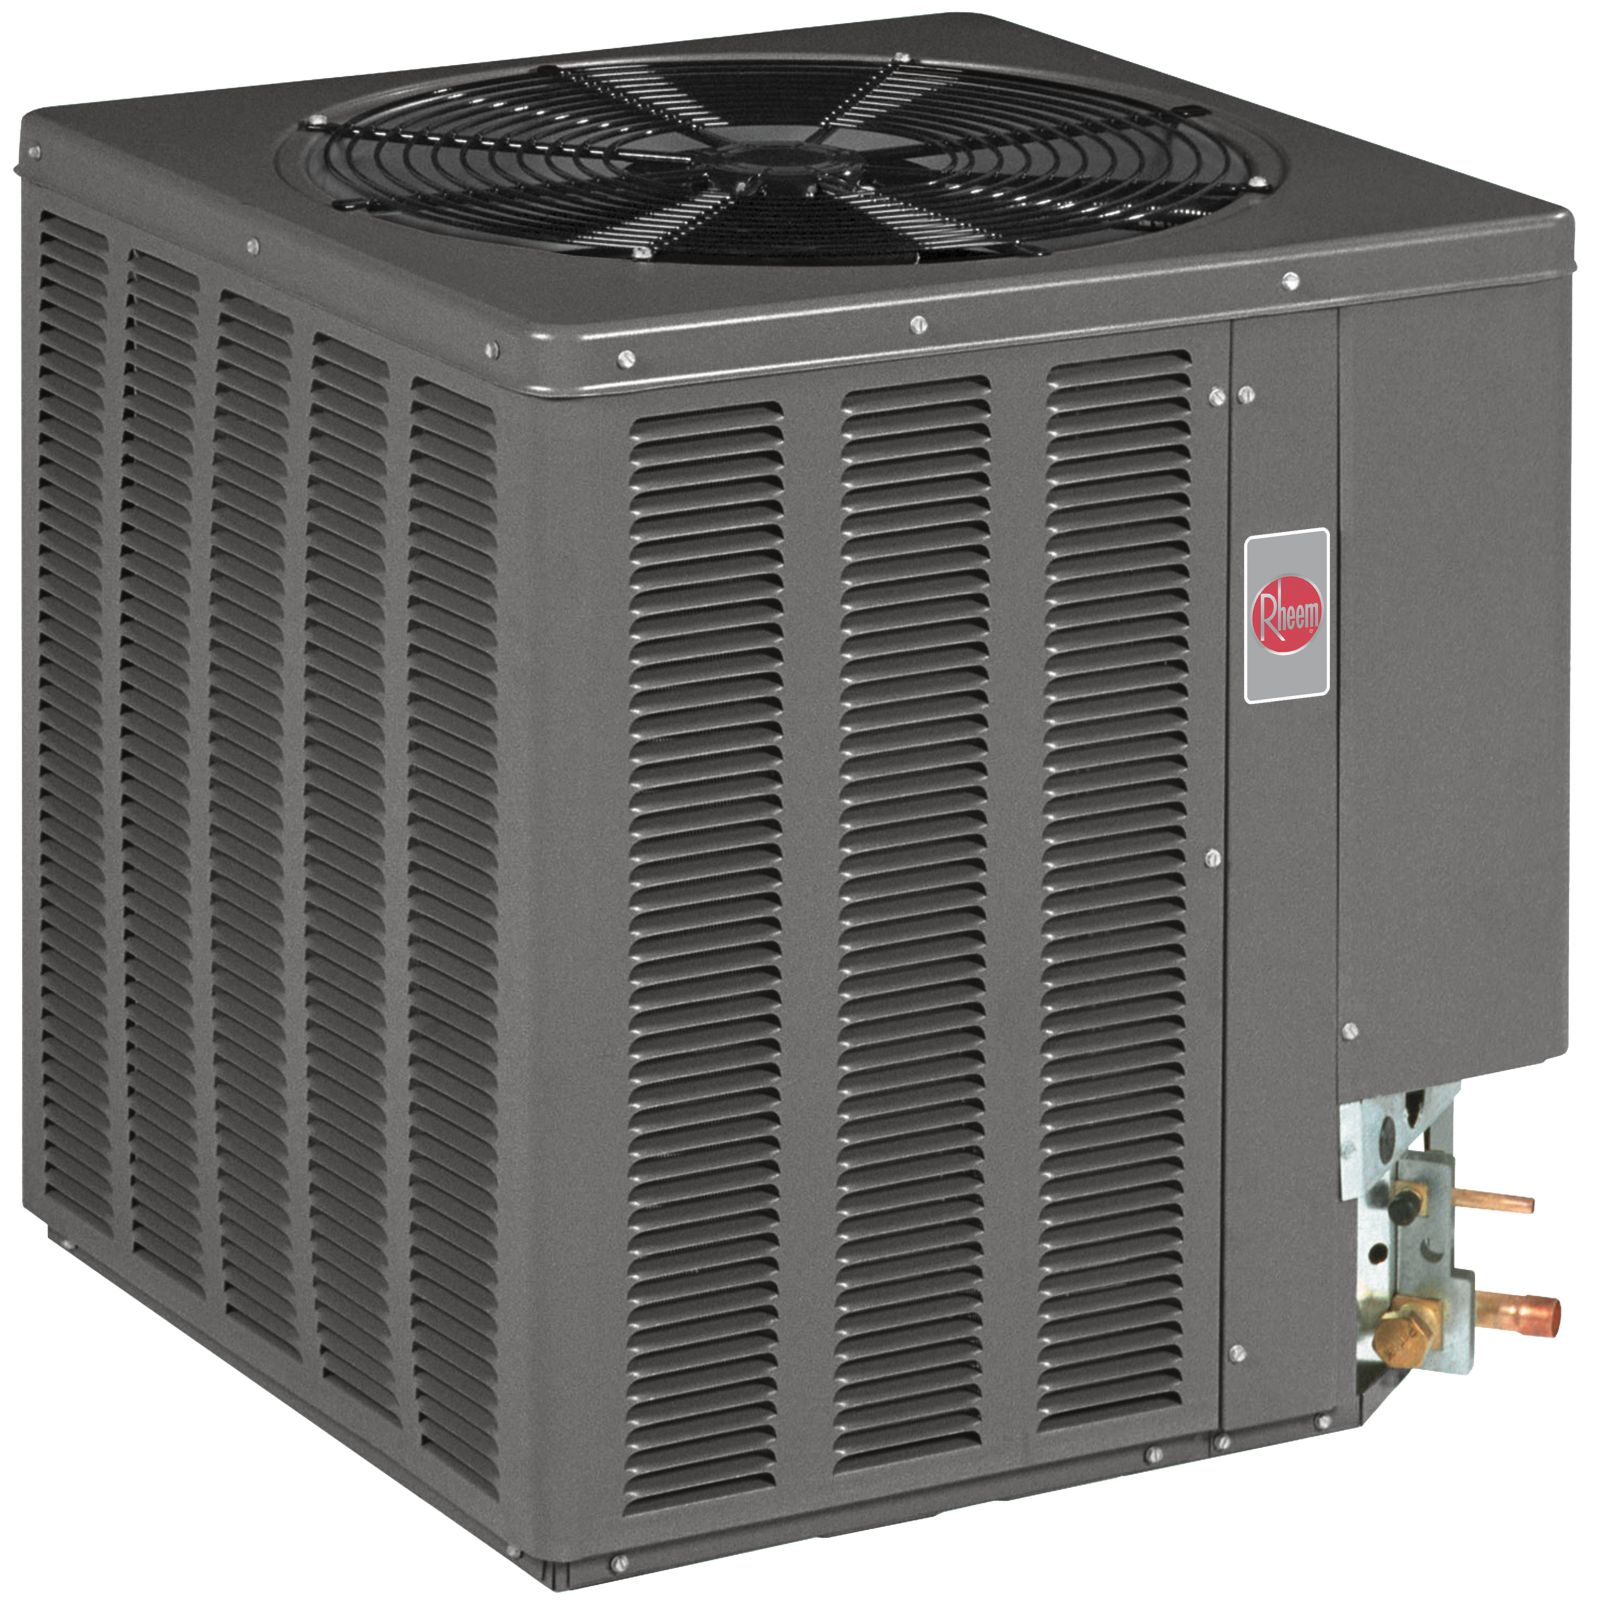 Rheem 13AJN30A01 - Value Series 2 1/2 Ton, 13 SEER, R410a Air Conditioner  Condenser